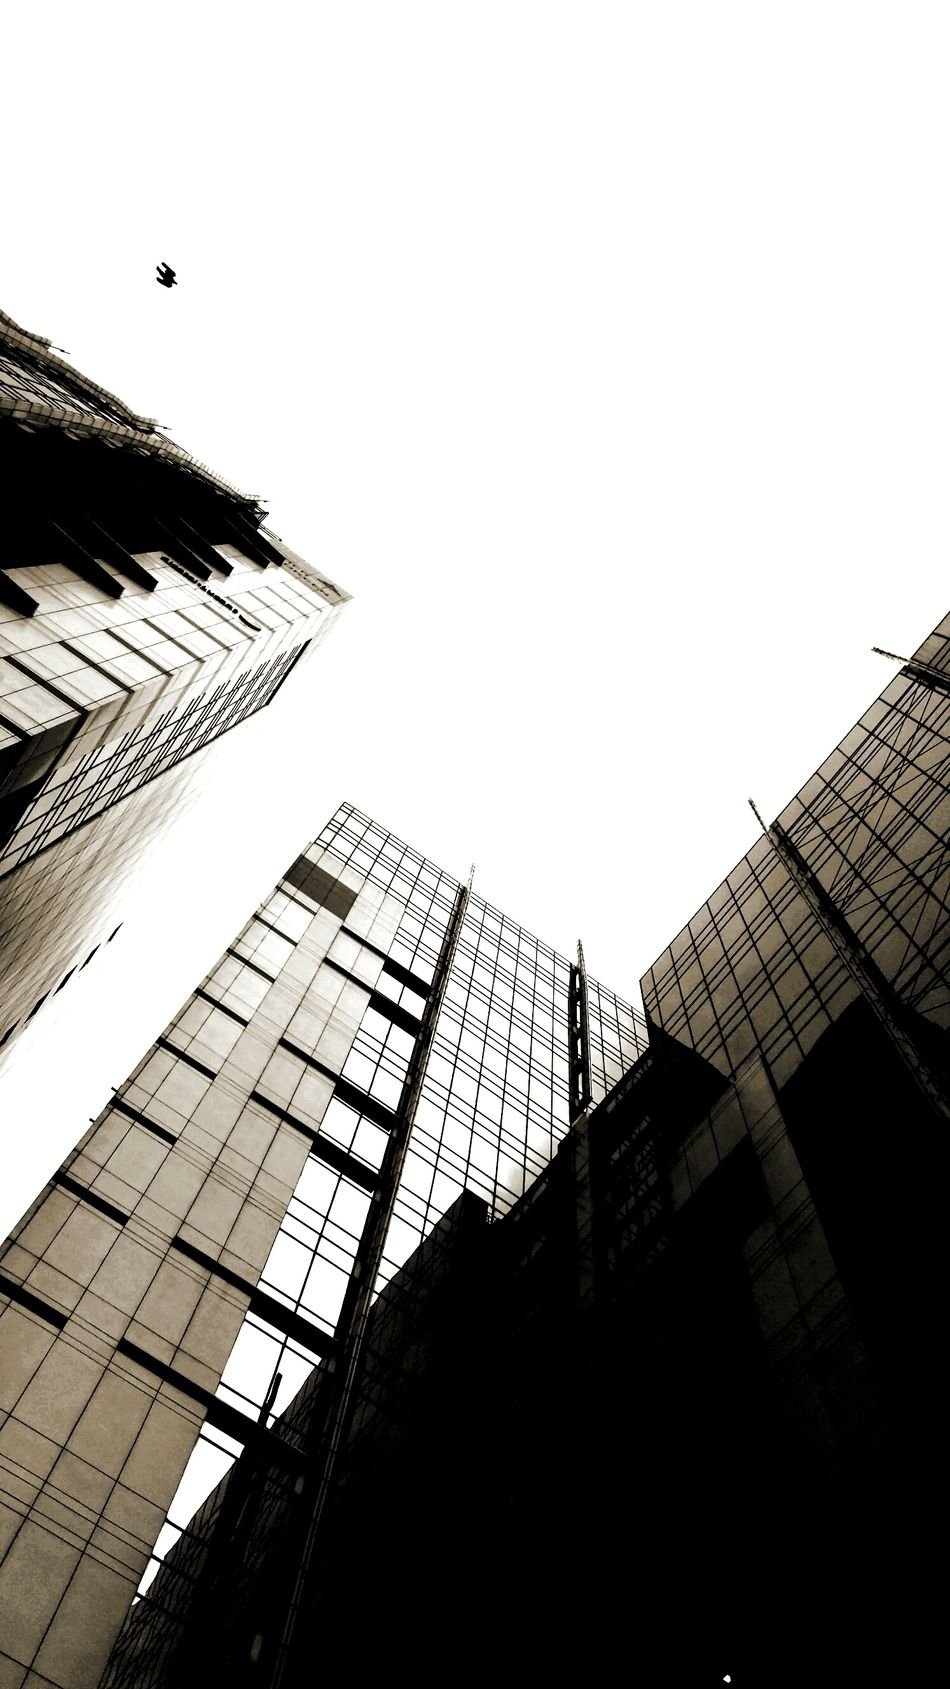 Skyline Architecture Building Exterior Architecture Building Exterior Low Angle View Built Structure Skyscraper City Tall - High Tower Sky Window Modern City Life Office Building Flying Outdoors Building Story Spire  Urban Skyline Day Development